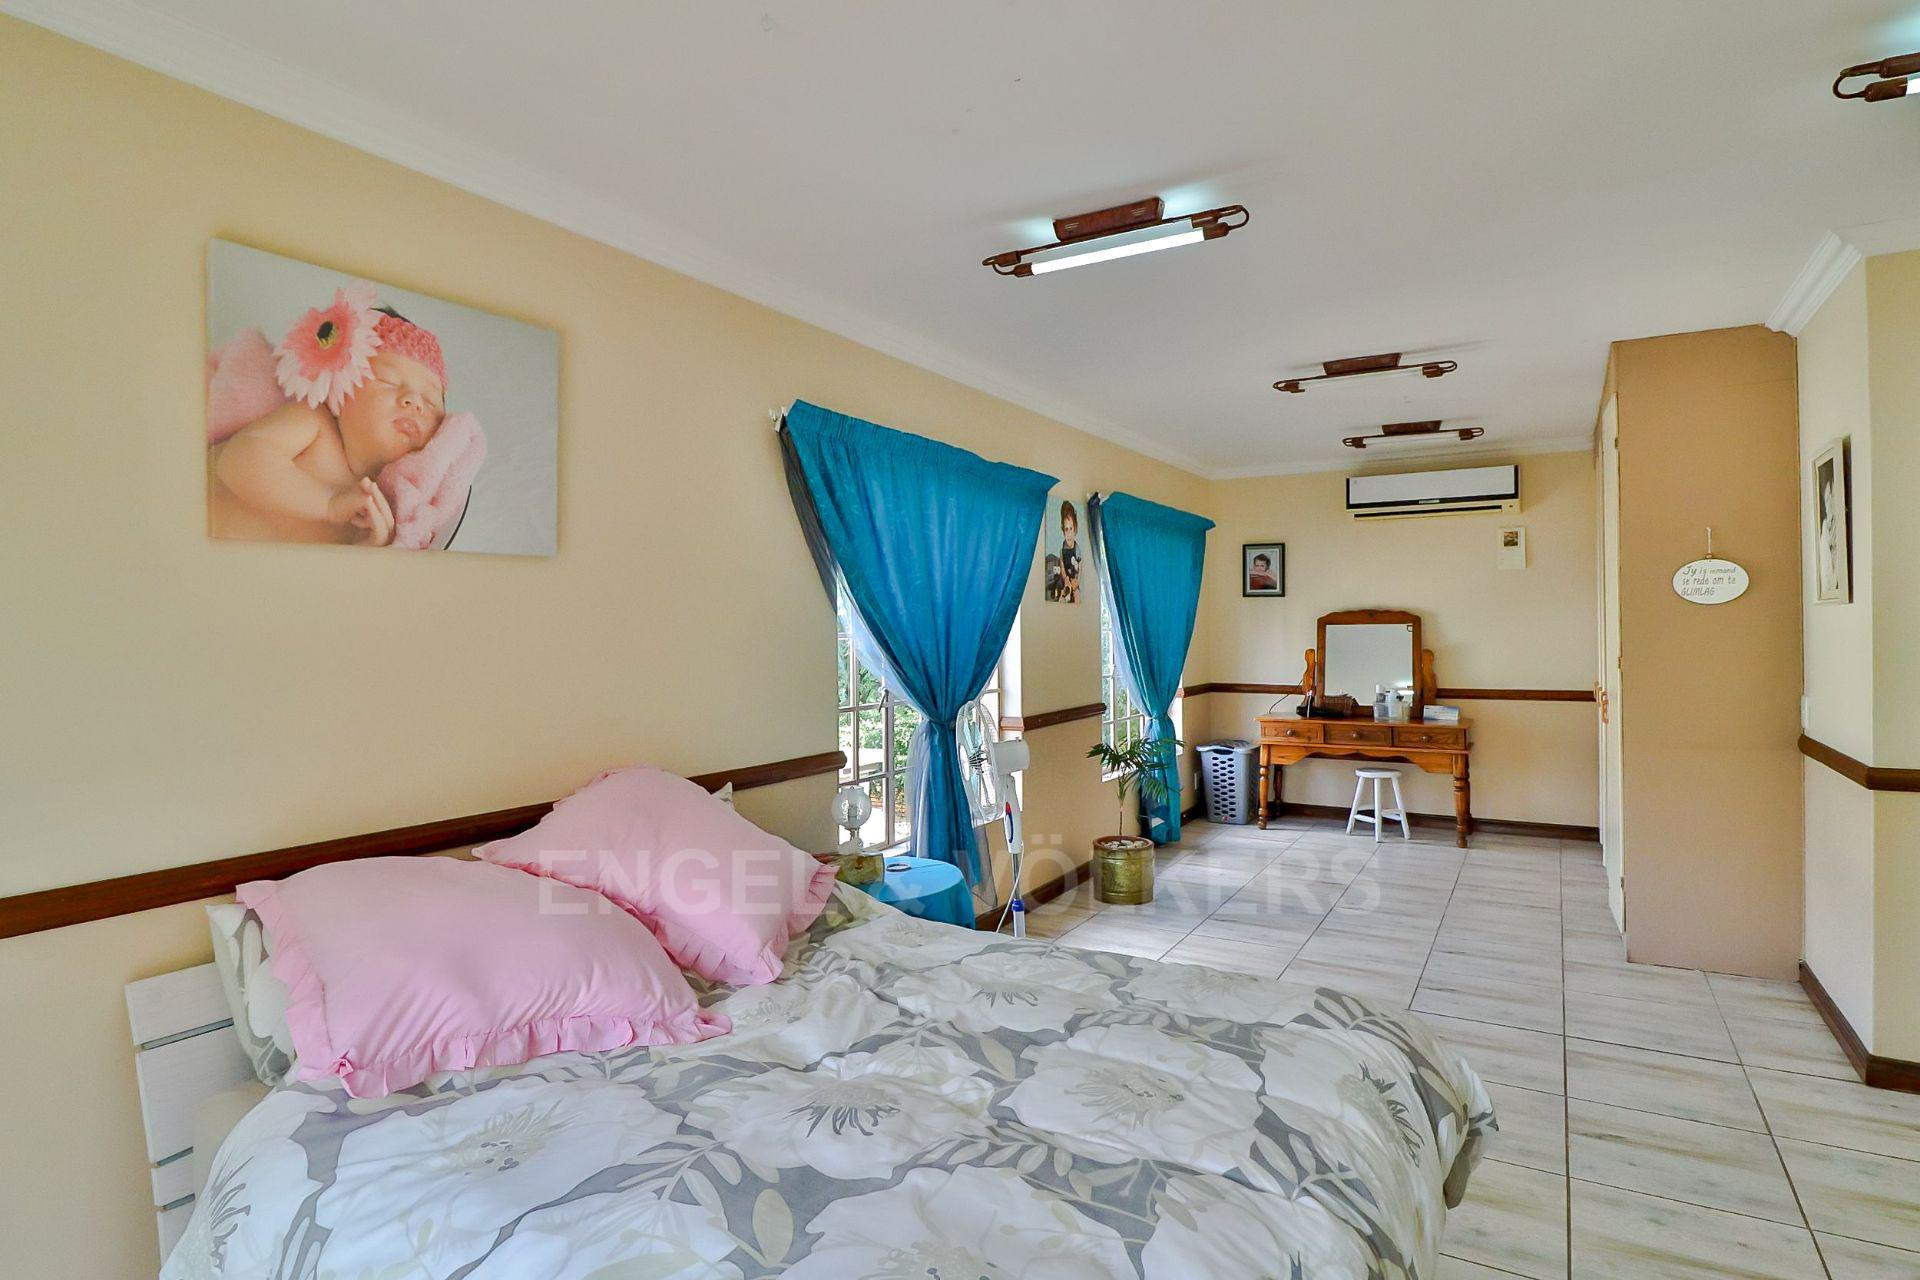 House in Ifafi - Flatlet spacious bedroom